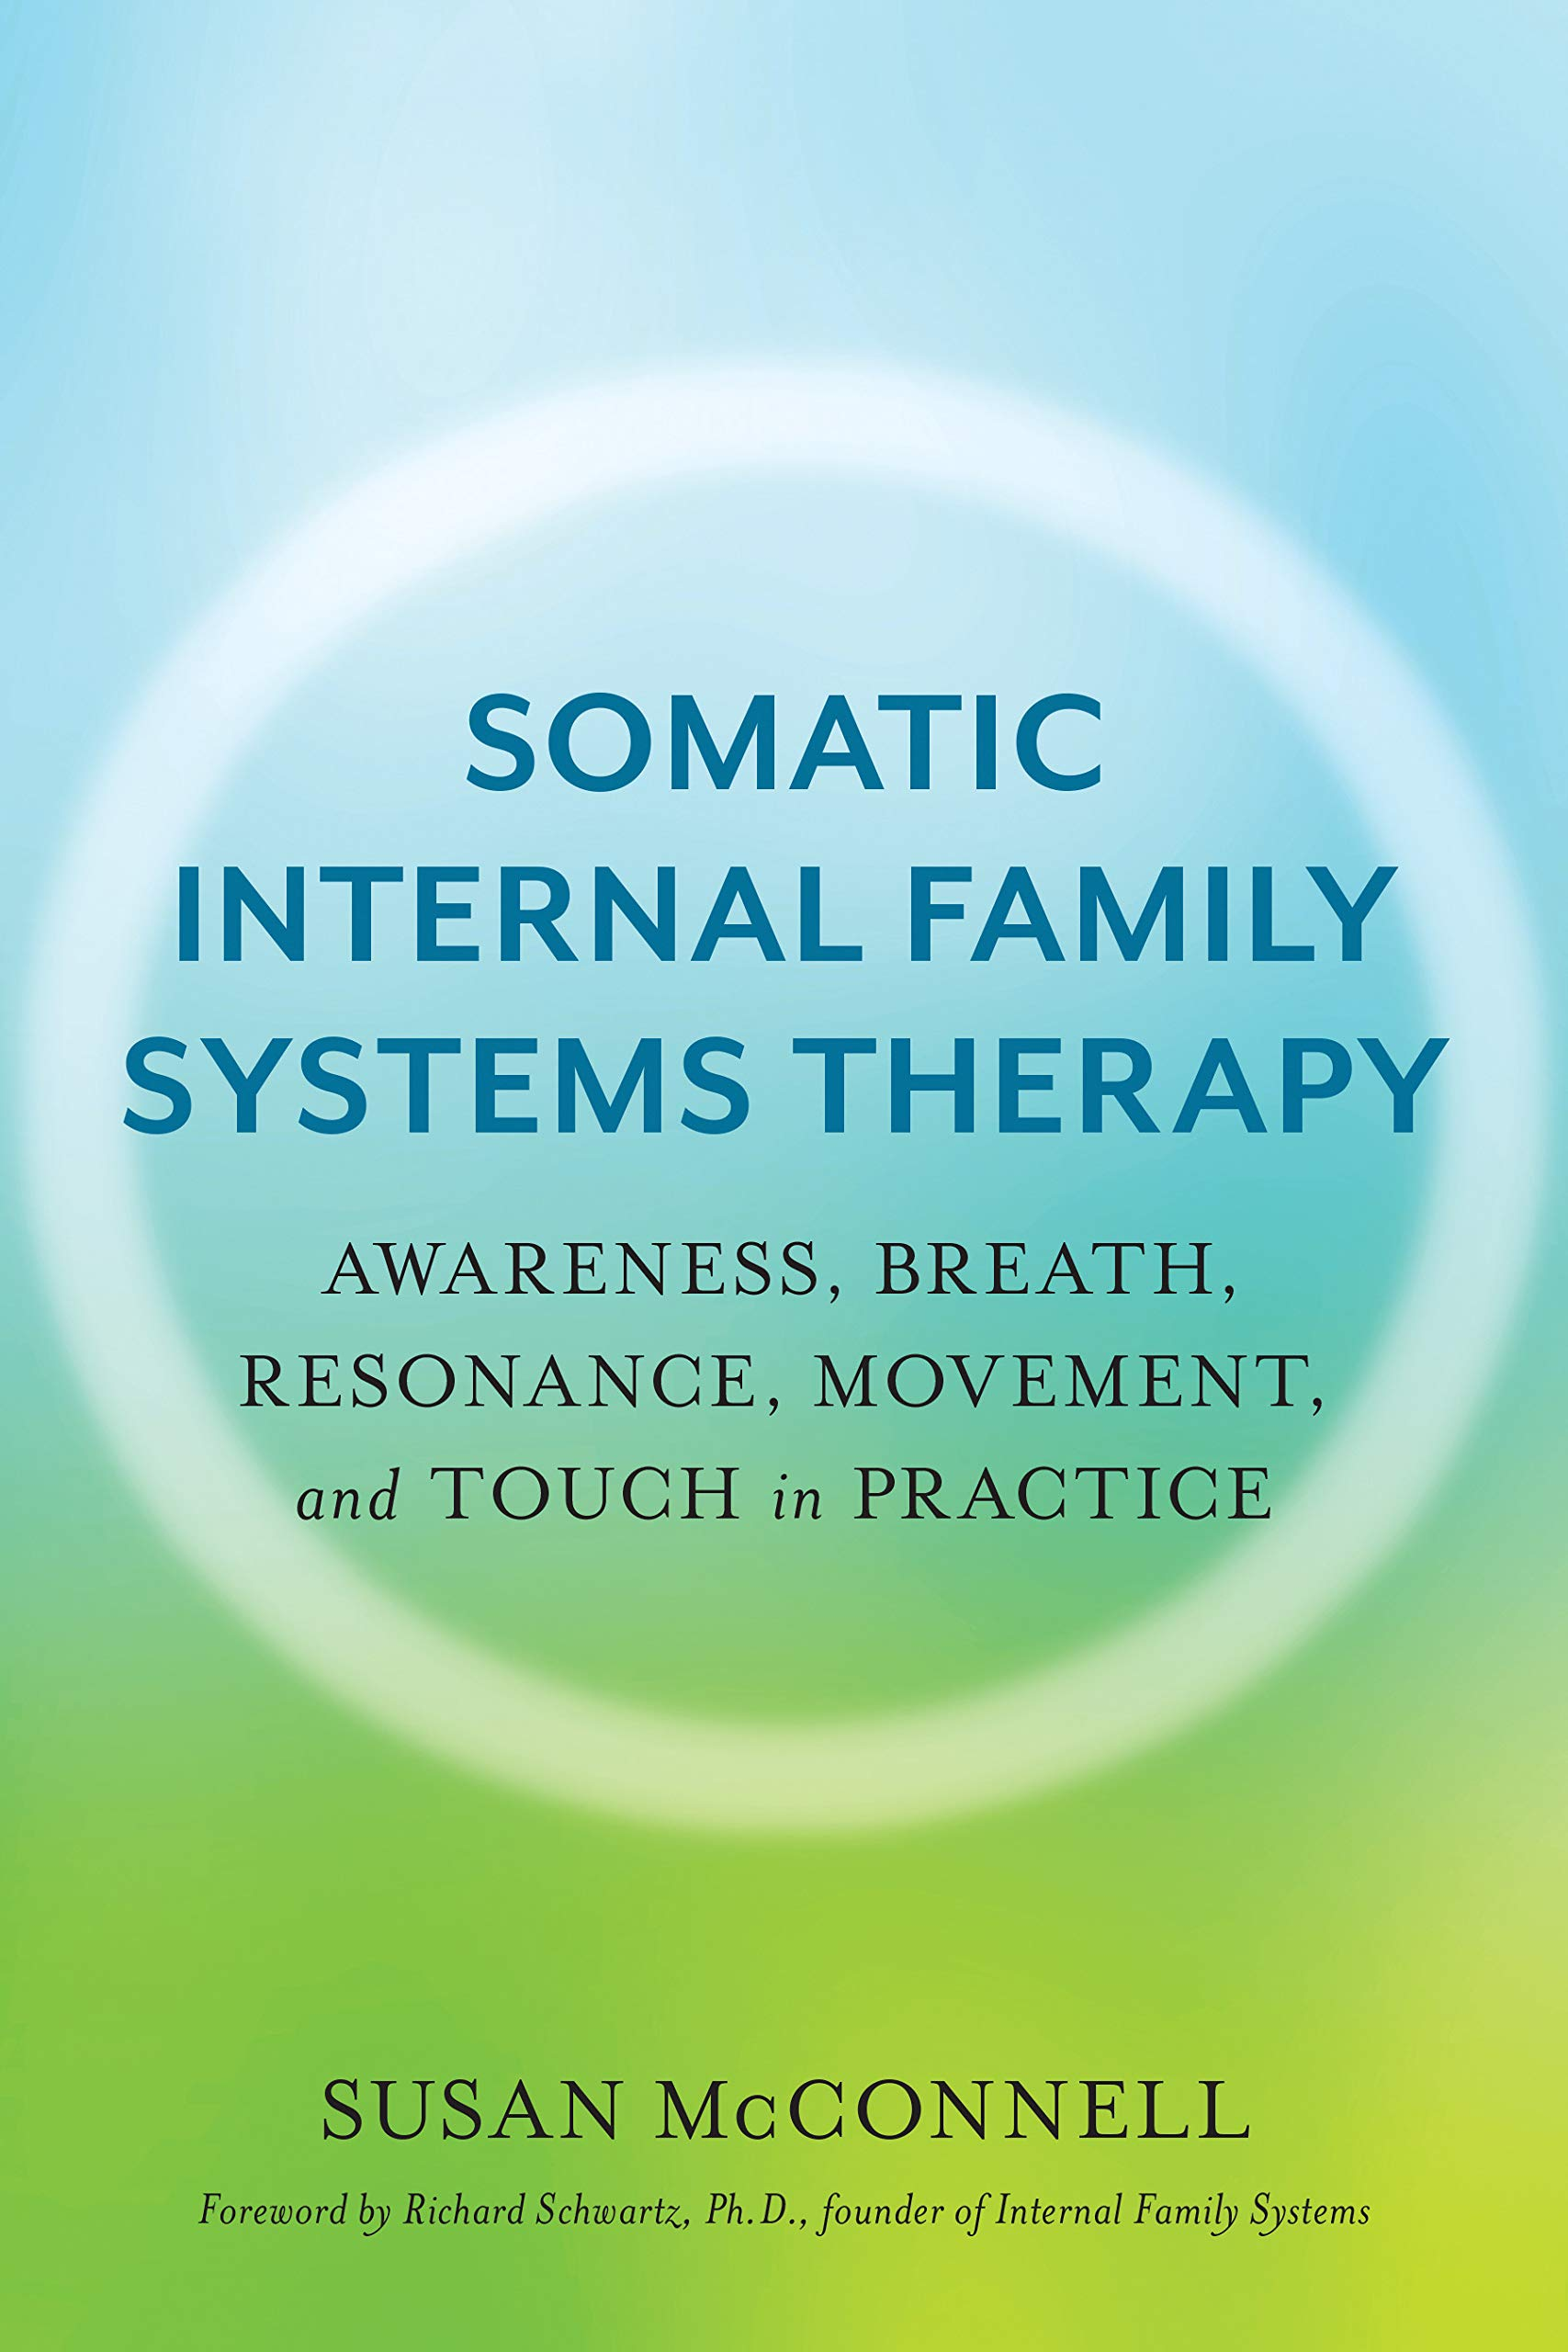 Image OfSomatic Internal Family Systems Therapy: Awareness, Breath, Resonance, Movement And Touch In Practice